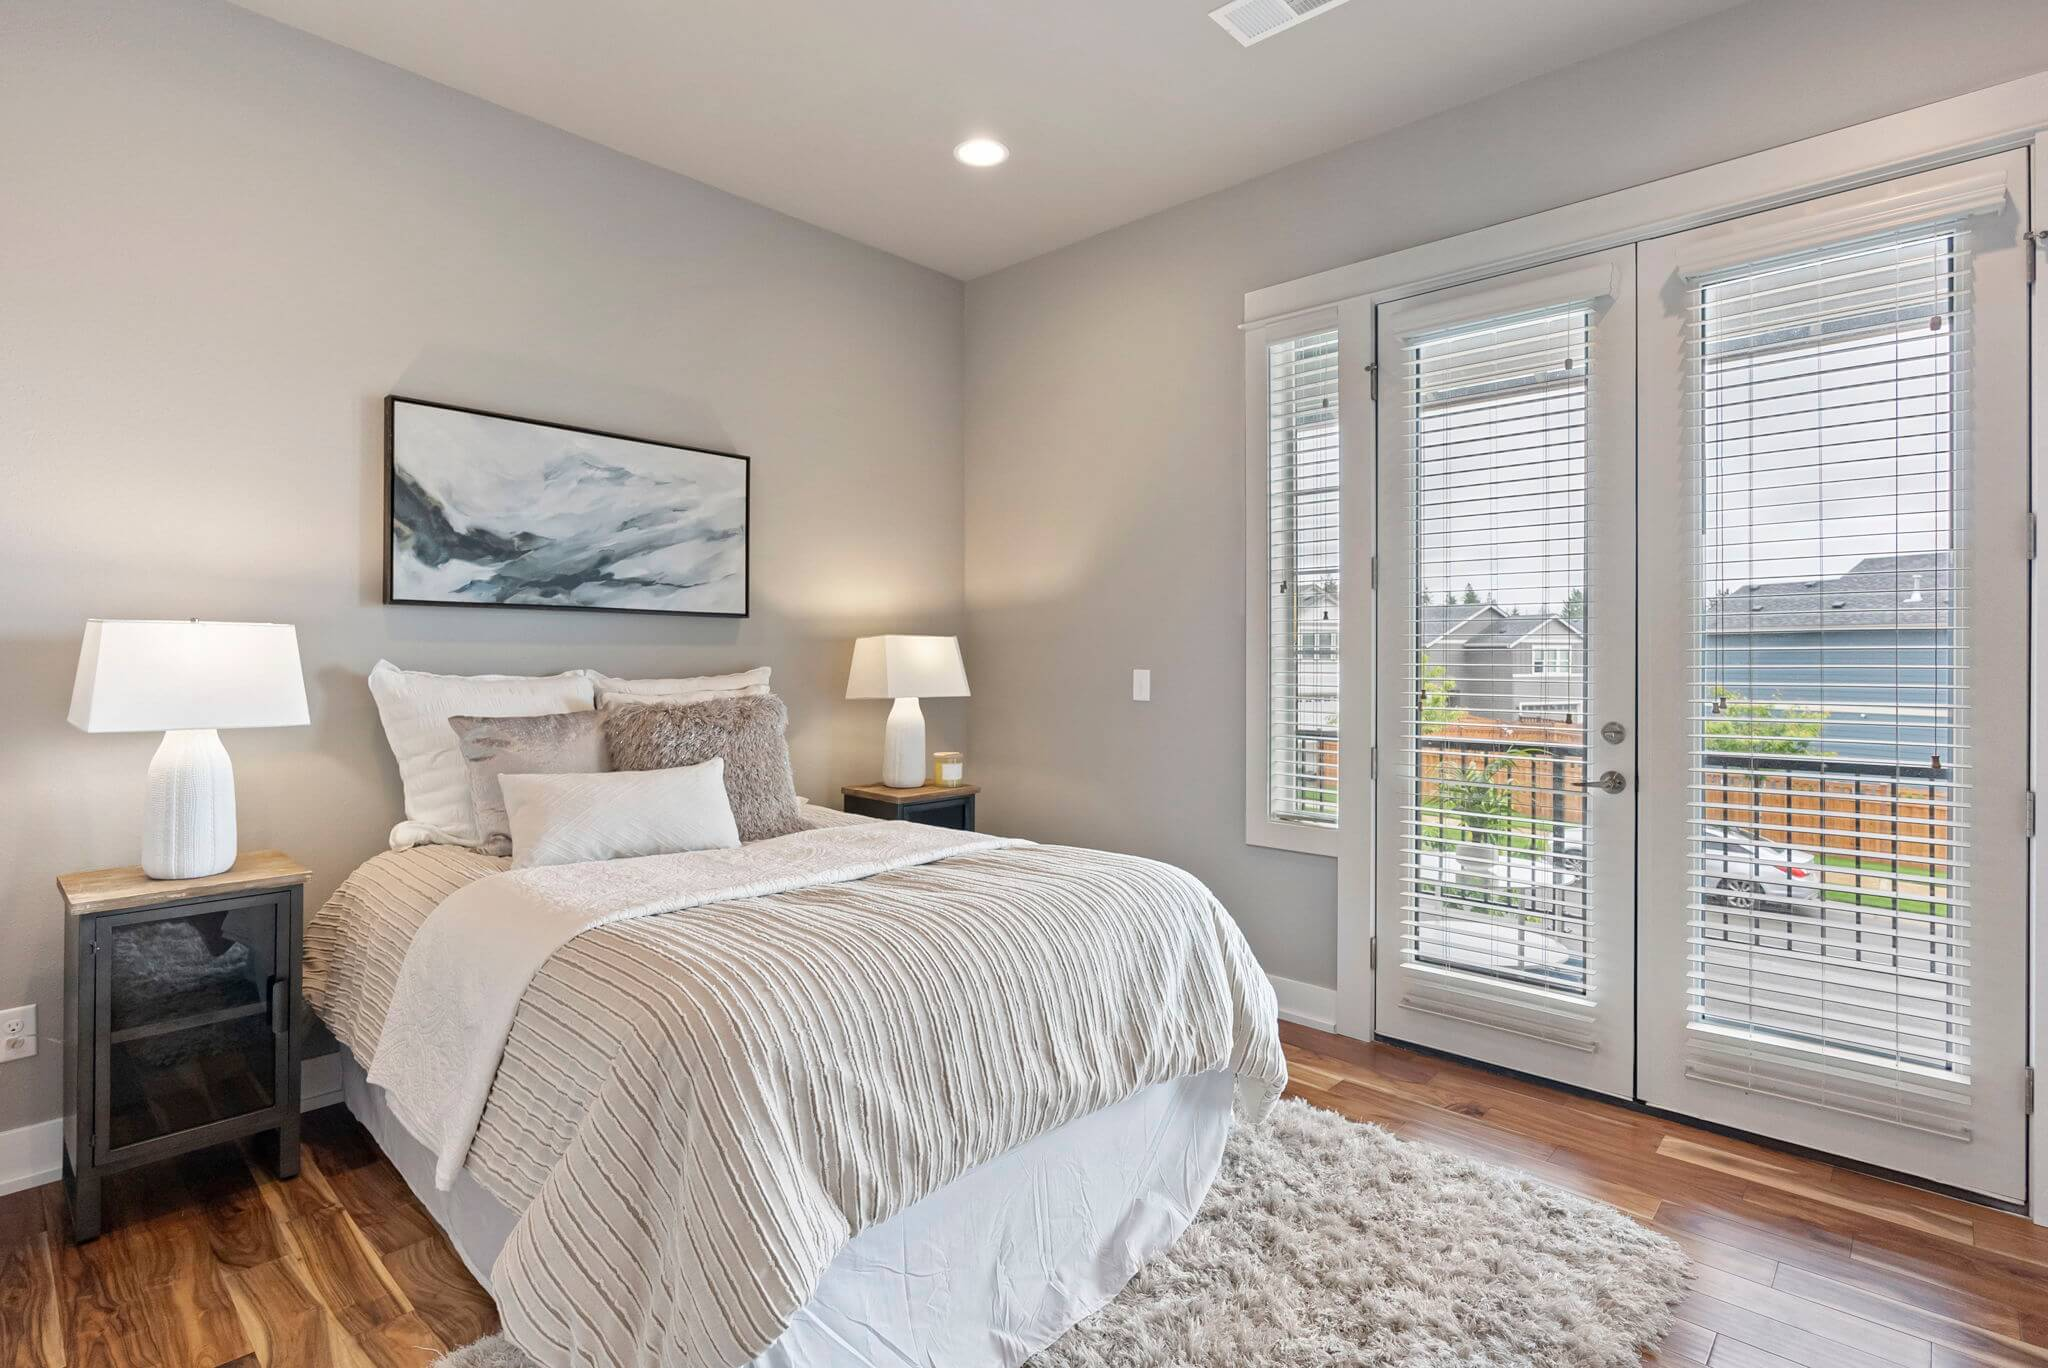 Main floor bedroom with French doors to a private balcony